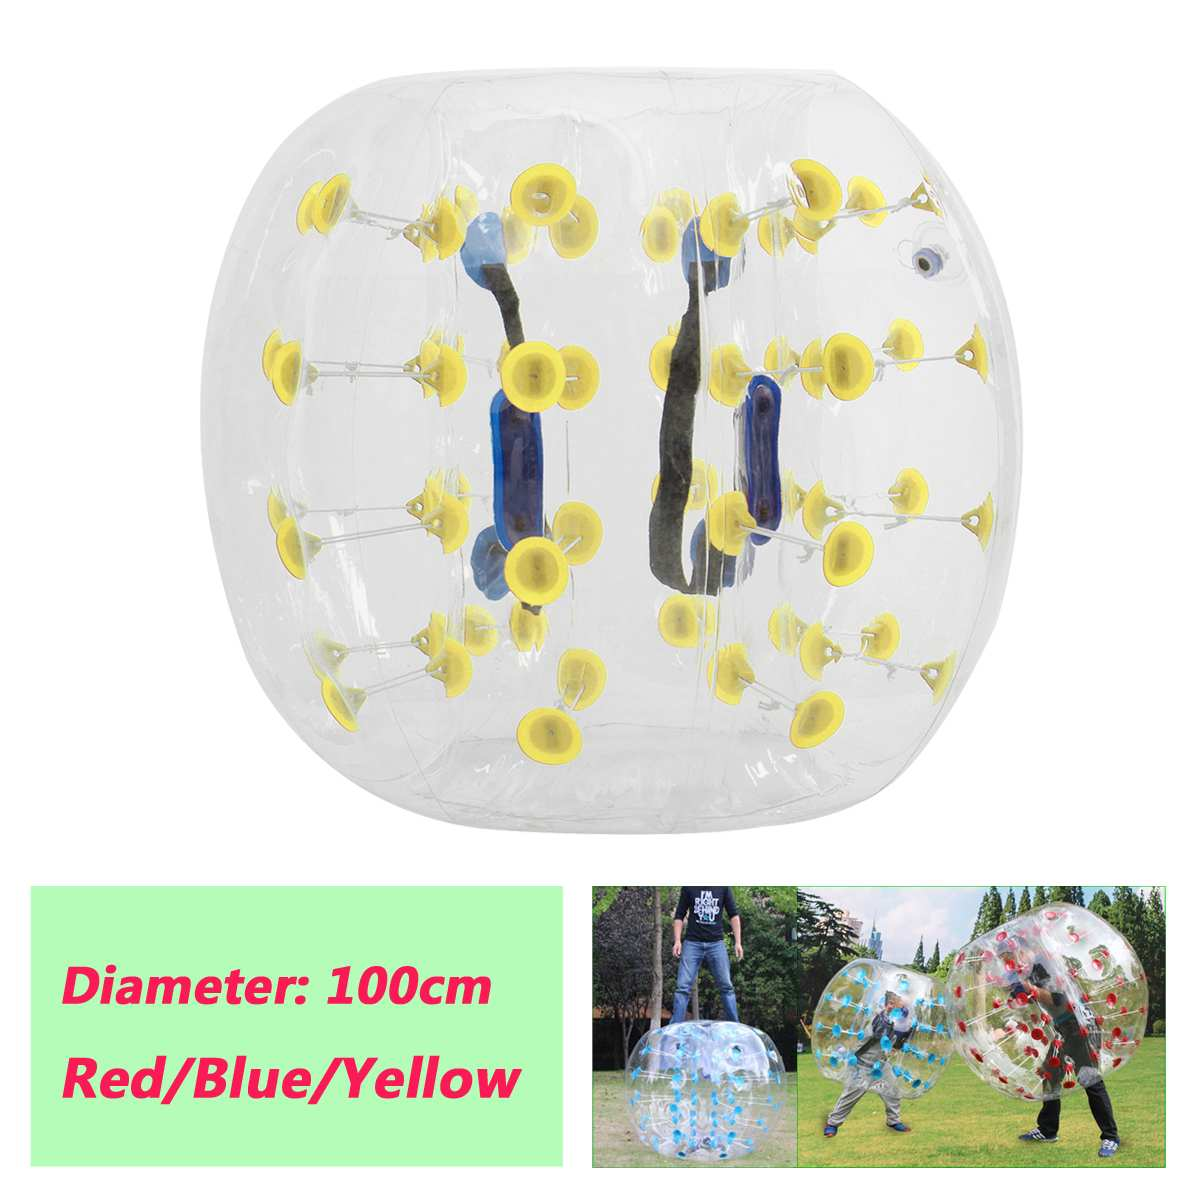 Air Bubble Soccer 0.8mm PVC 100cm Air Bumper Ball Body Zorb Bubble Ball Football Bubble Soccer Kids Outdoor Toys Gift